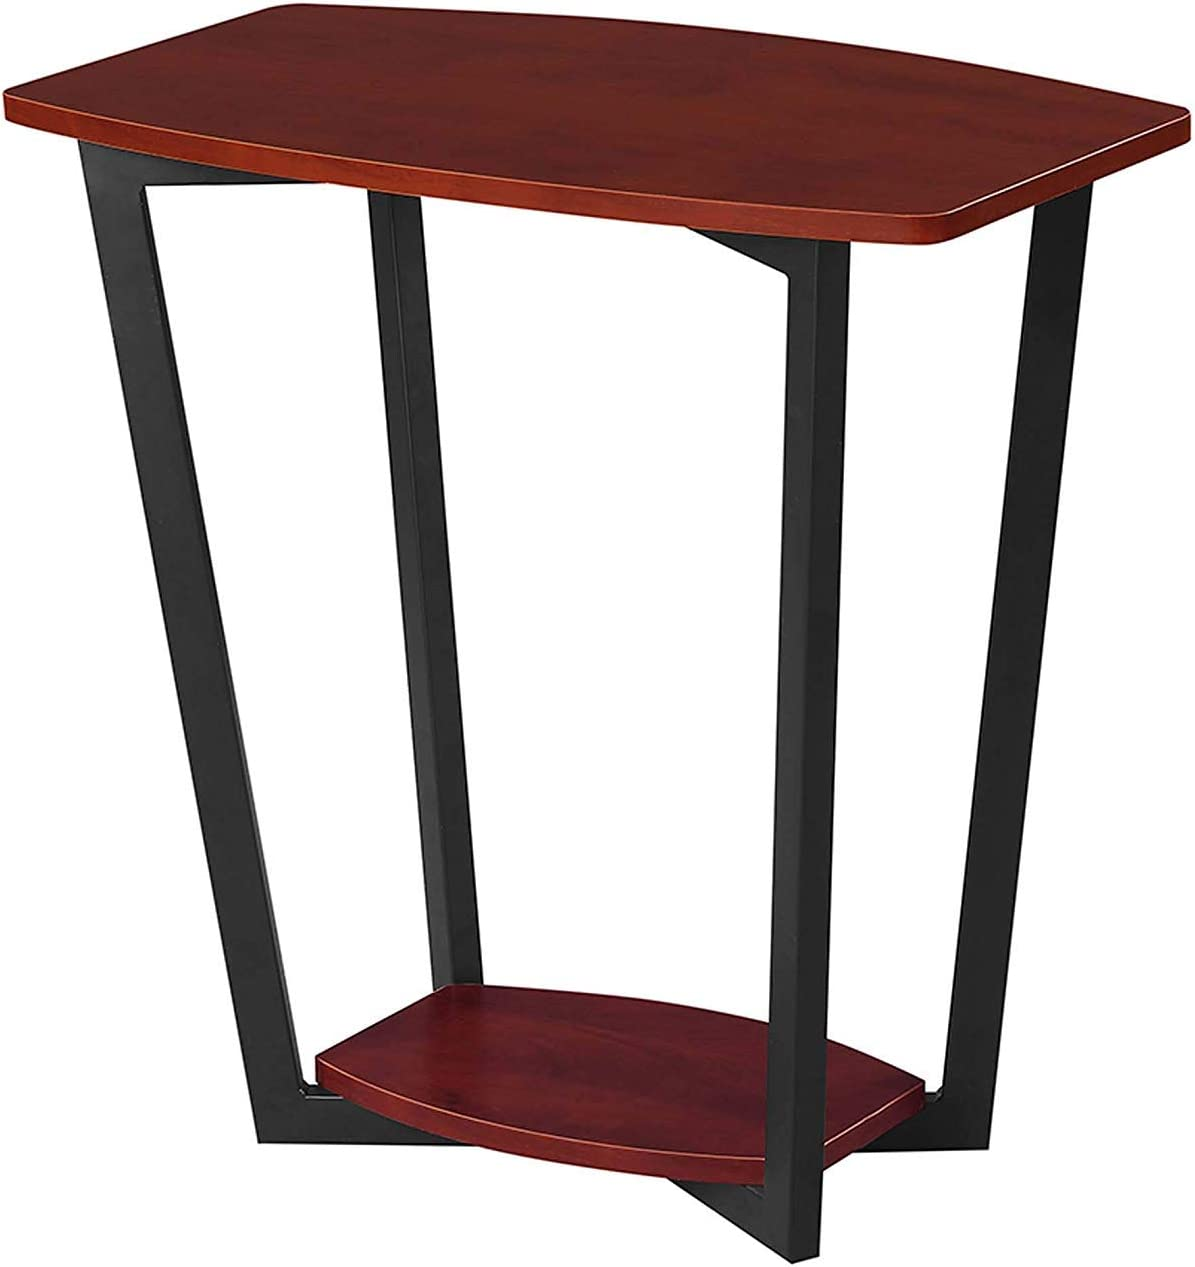 Convenience Concepts Graystone End Table, Cherry / Black Frame